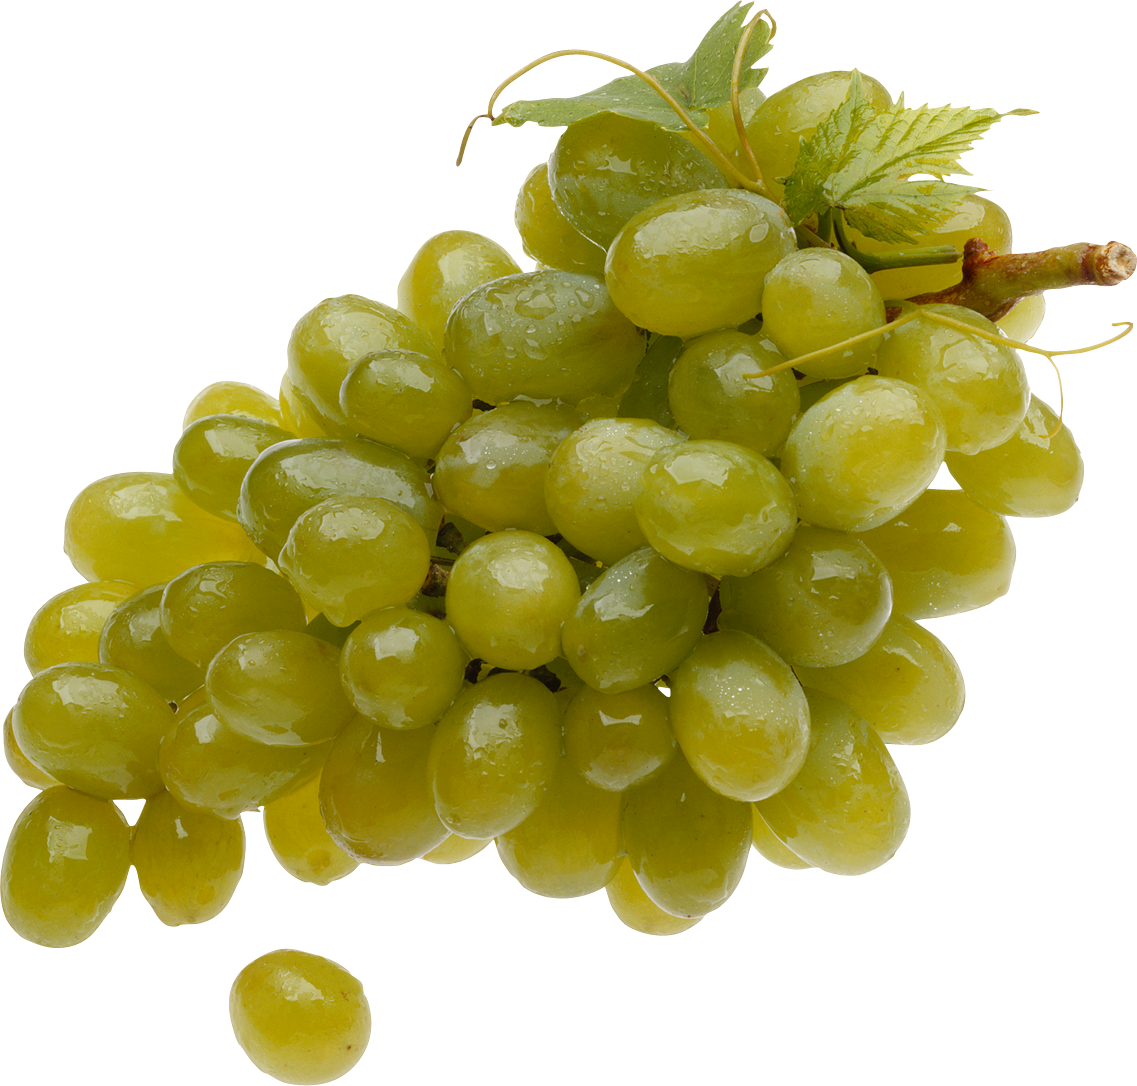 Green png image purepng. Transparent grapes high quality vector freeuse